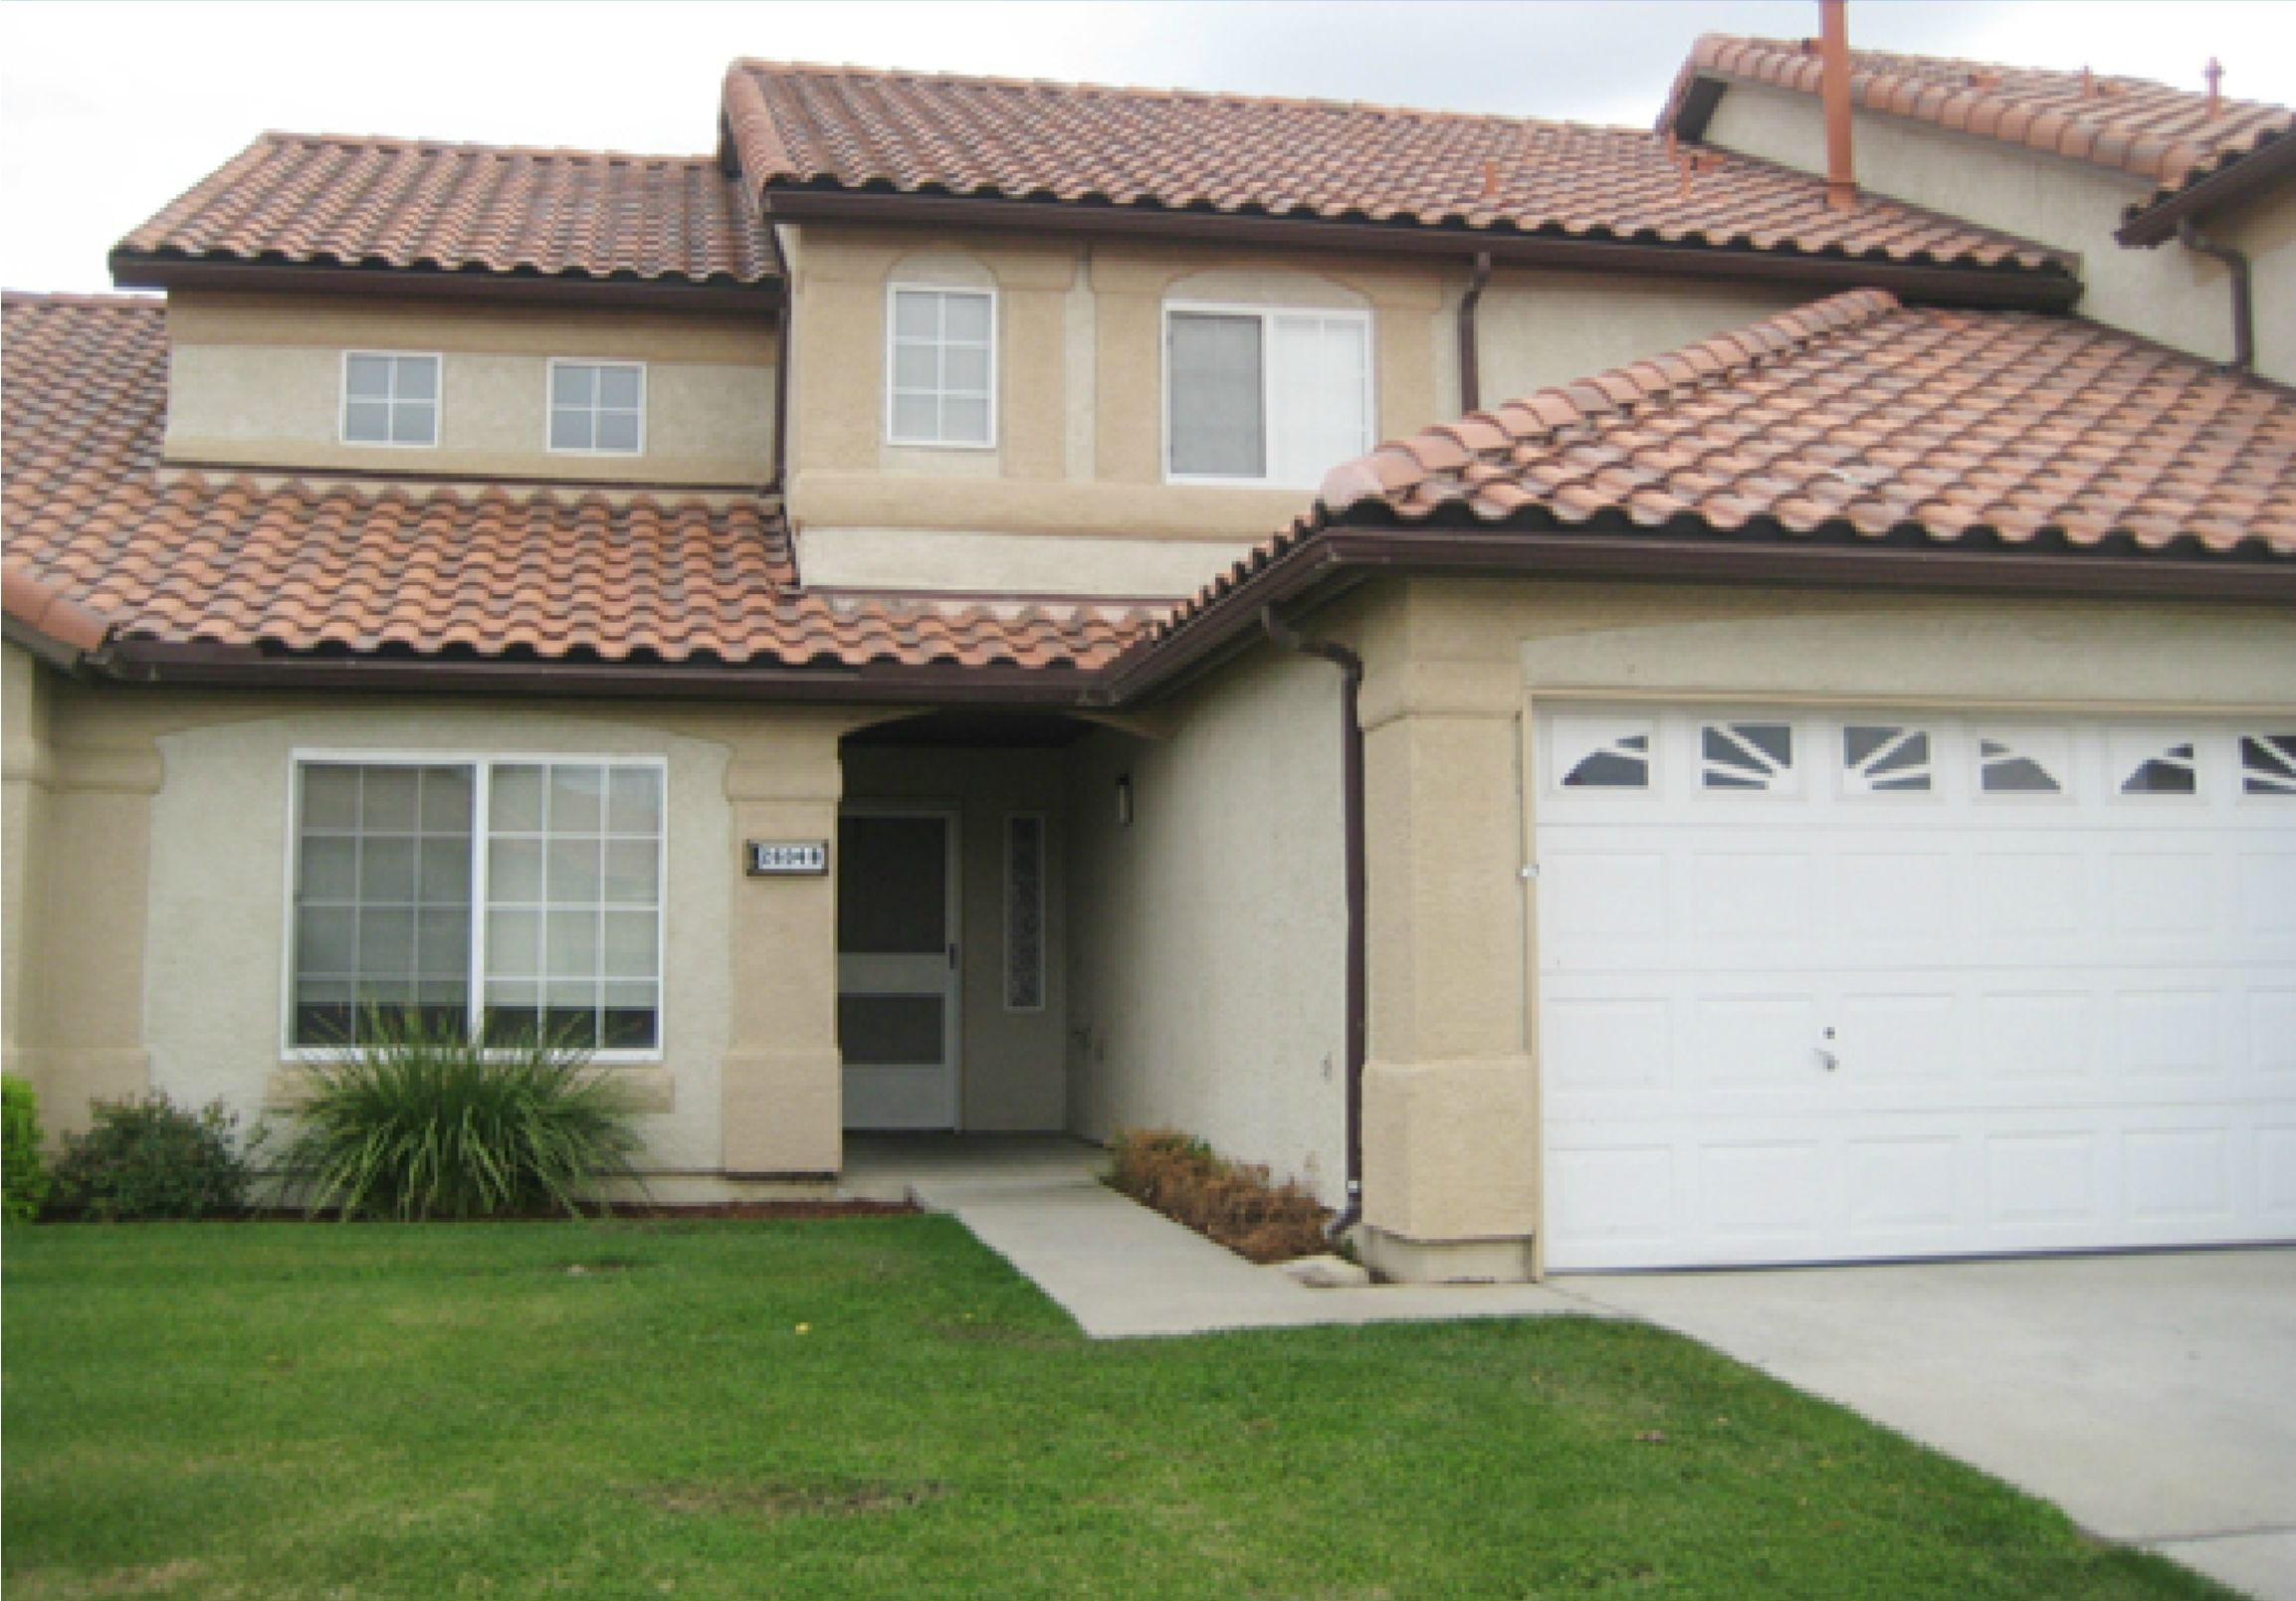 NAS Lemoore Coral Sea Park Neighborhood 2 4 bedroom duplex